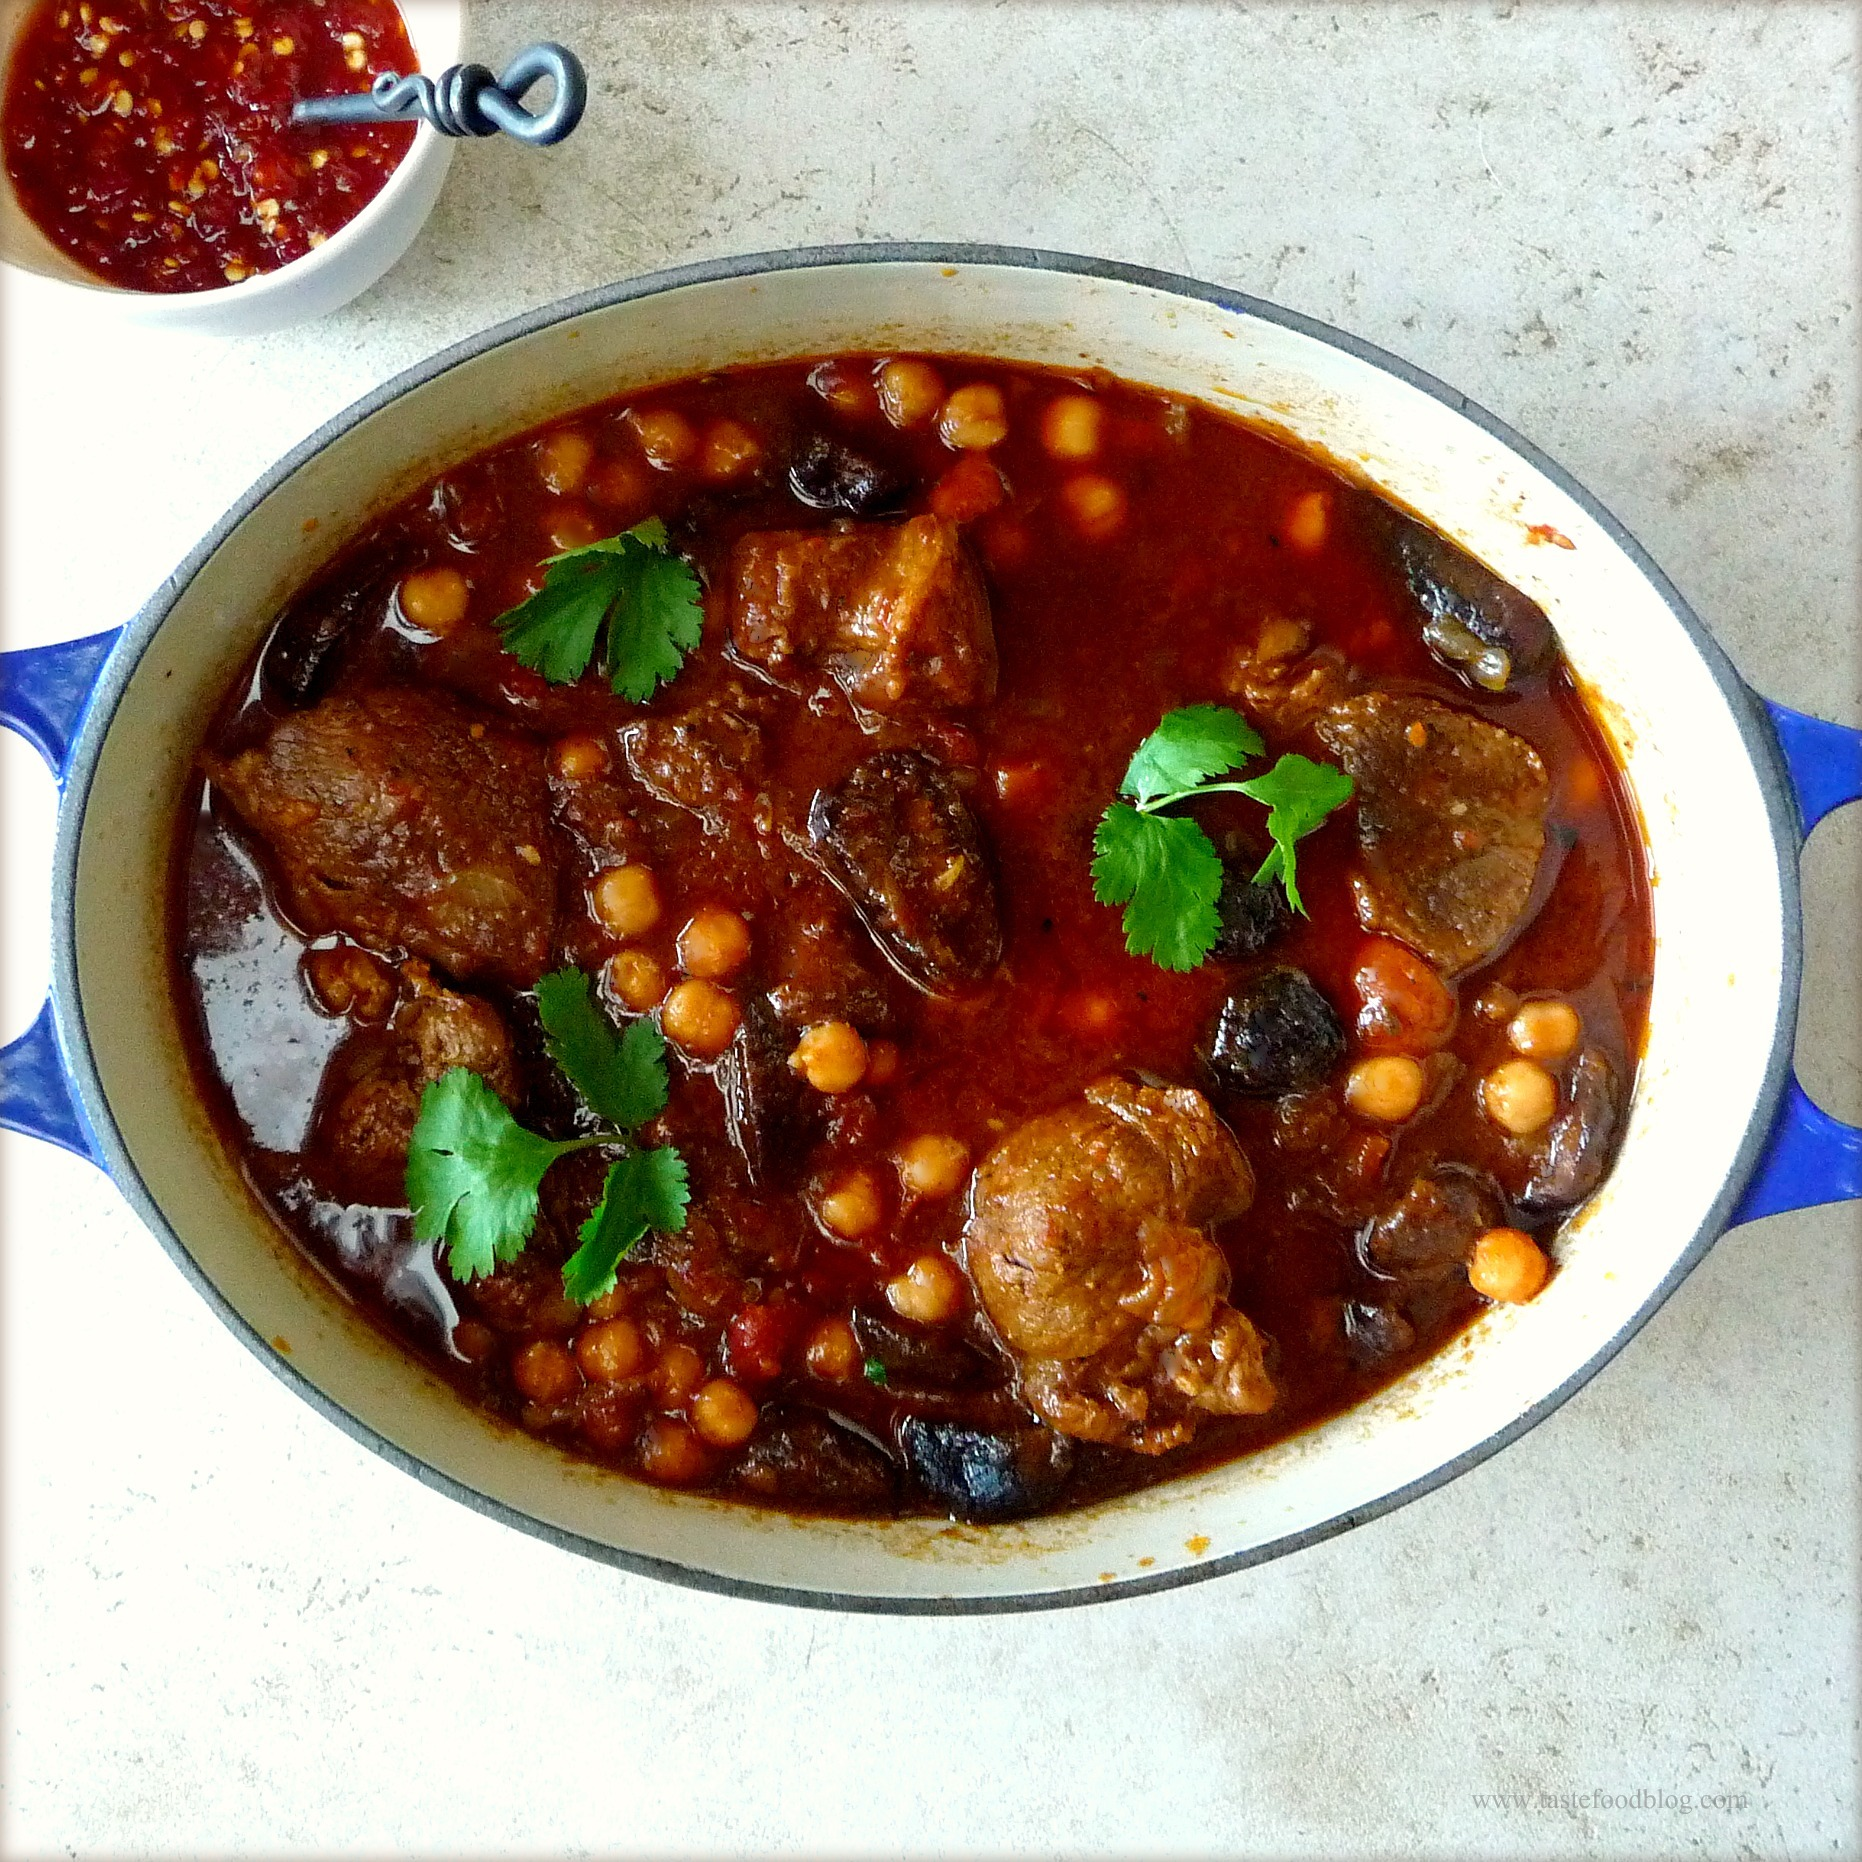 Moroccan Lamb Stew with Figs and Chickpeas TasteFood